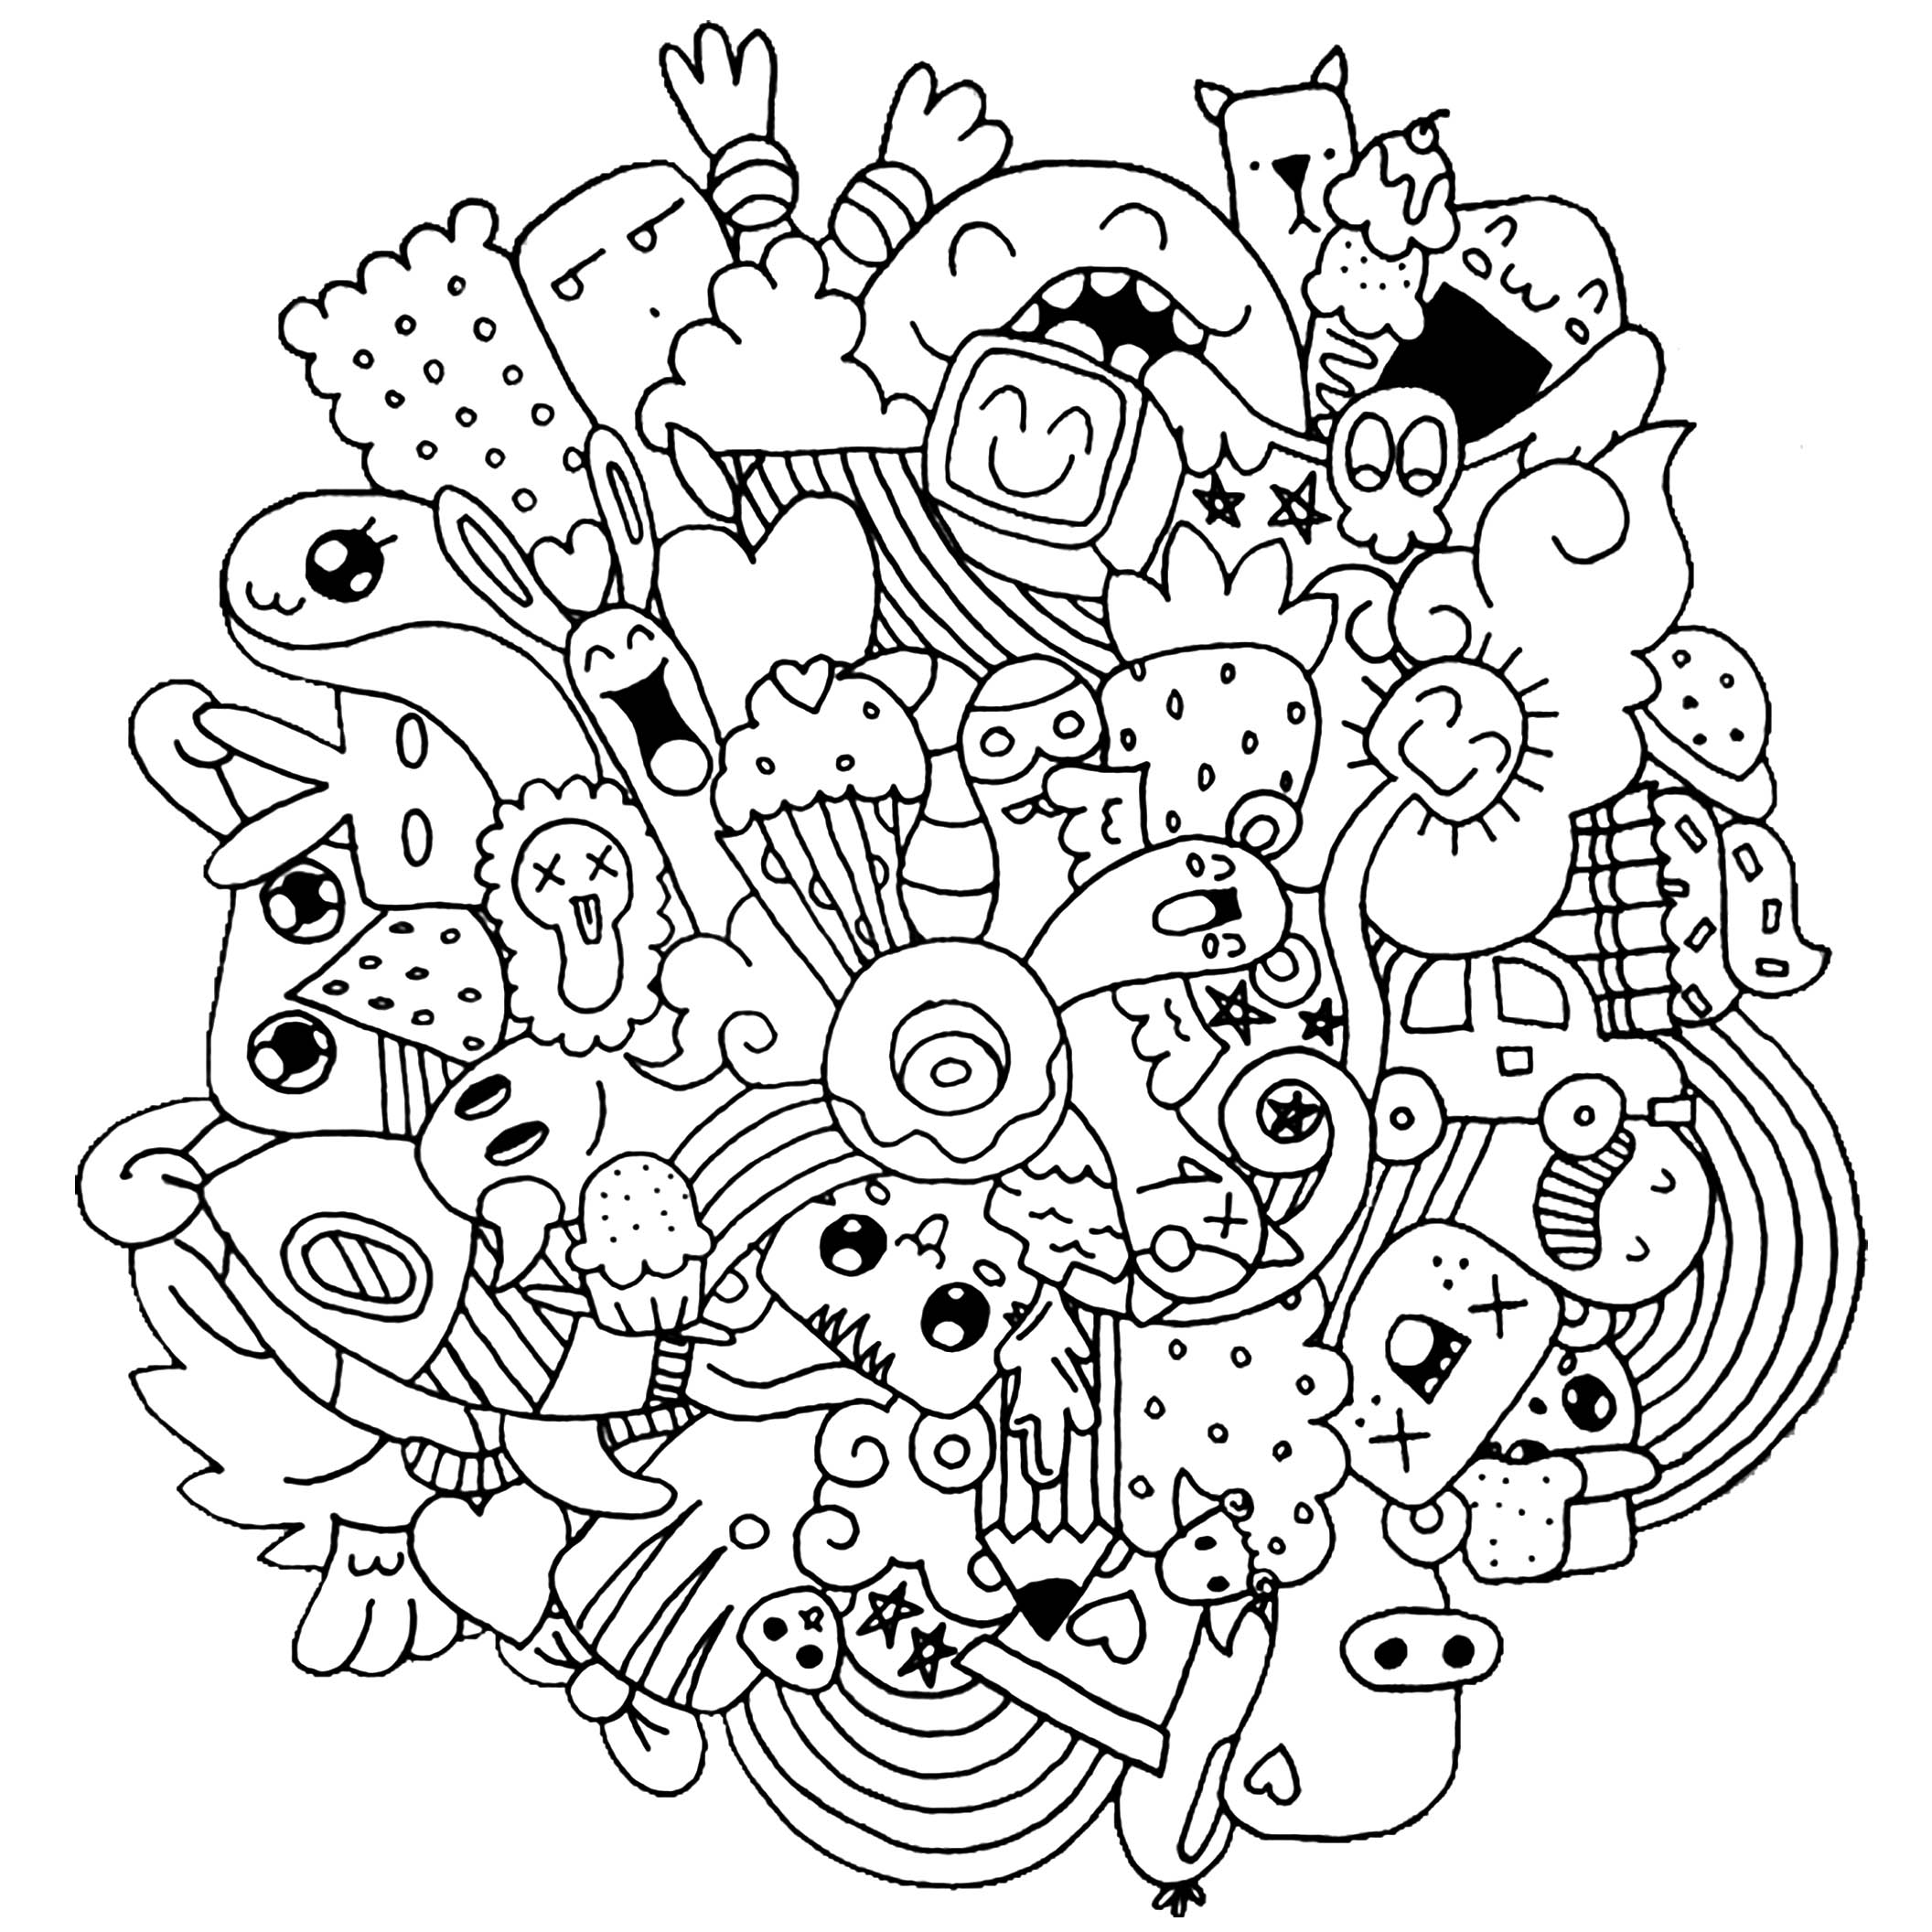 coloring art pages coloring sheet for kids coloring pages blog art coloring pages